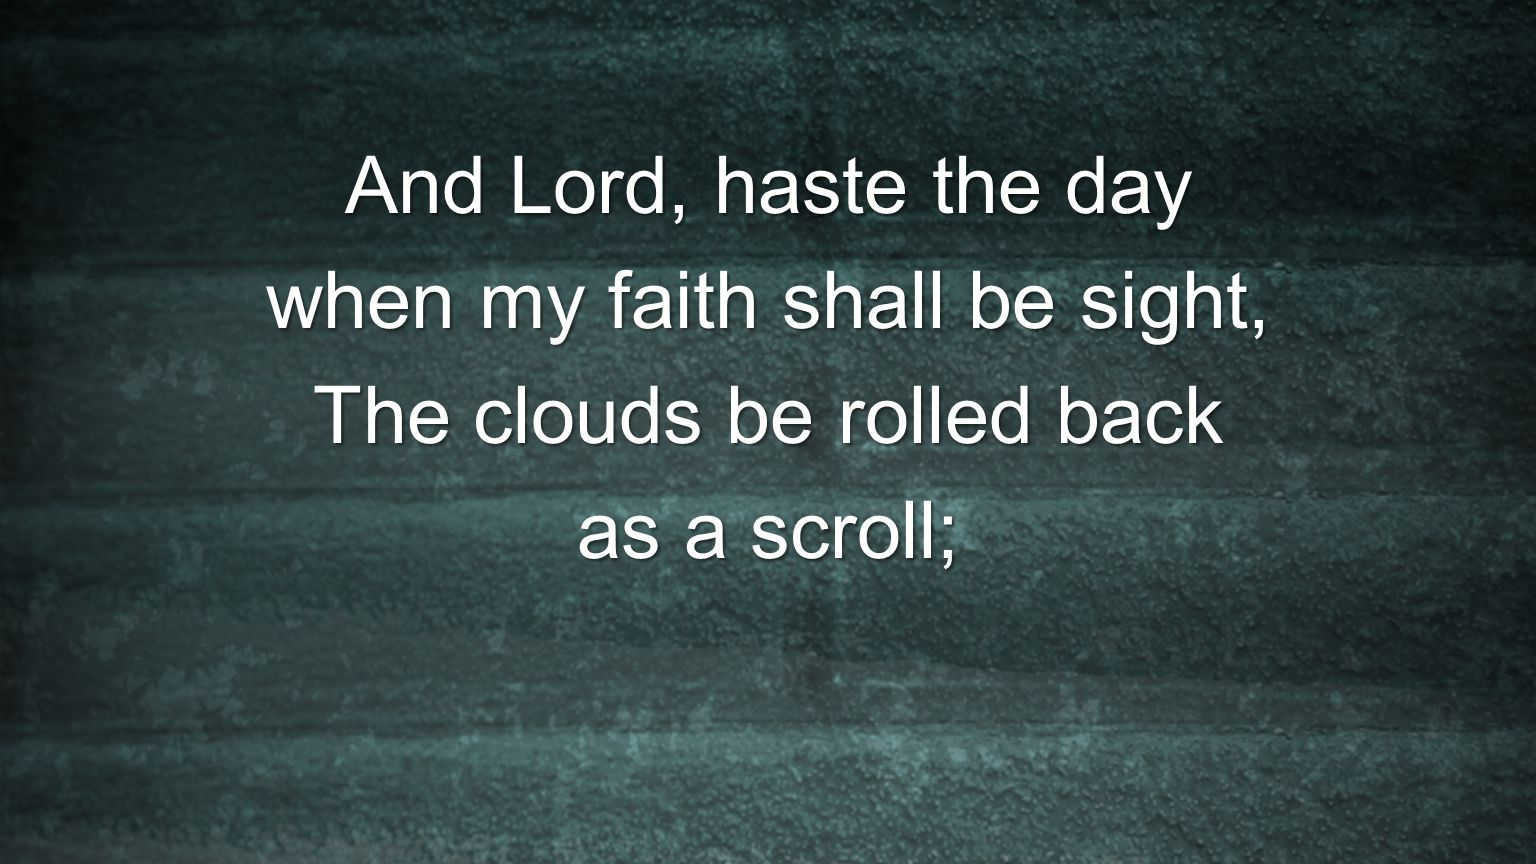 when my faith shall be sight, The clouds be rolled back as a scroll;